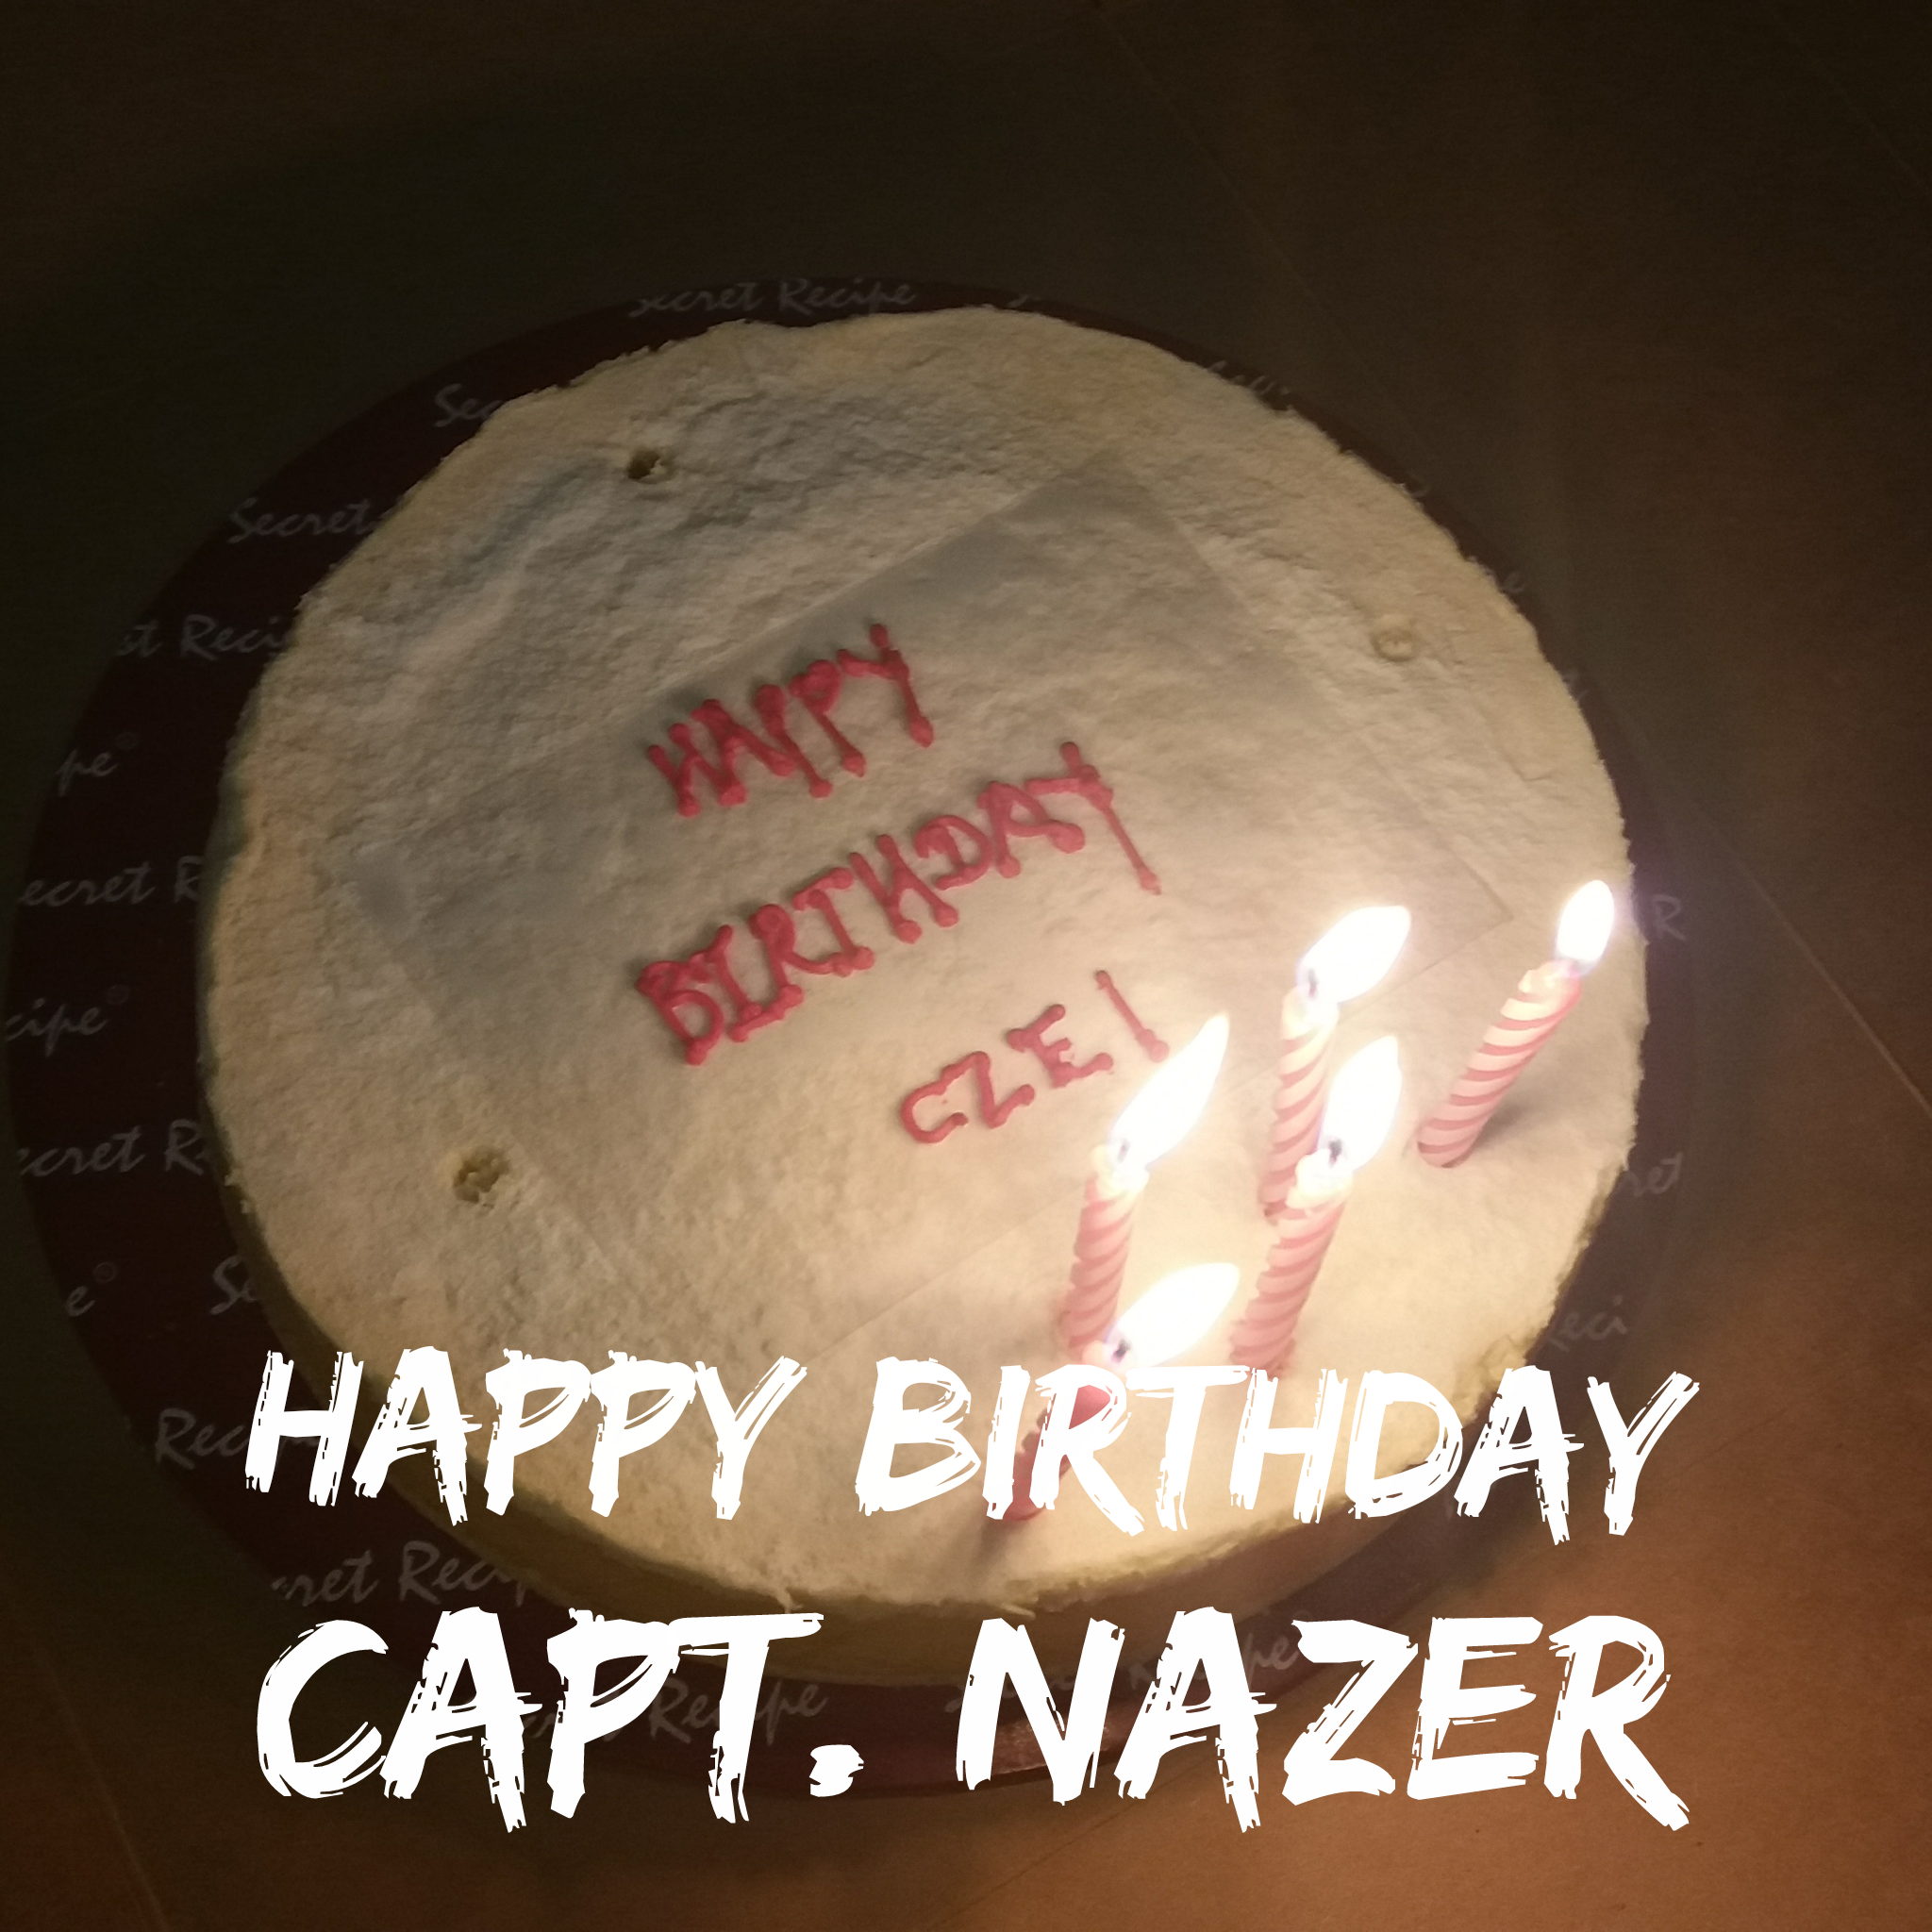 Happy Birthday Capt. Nazer!